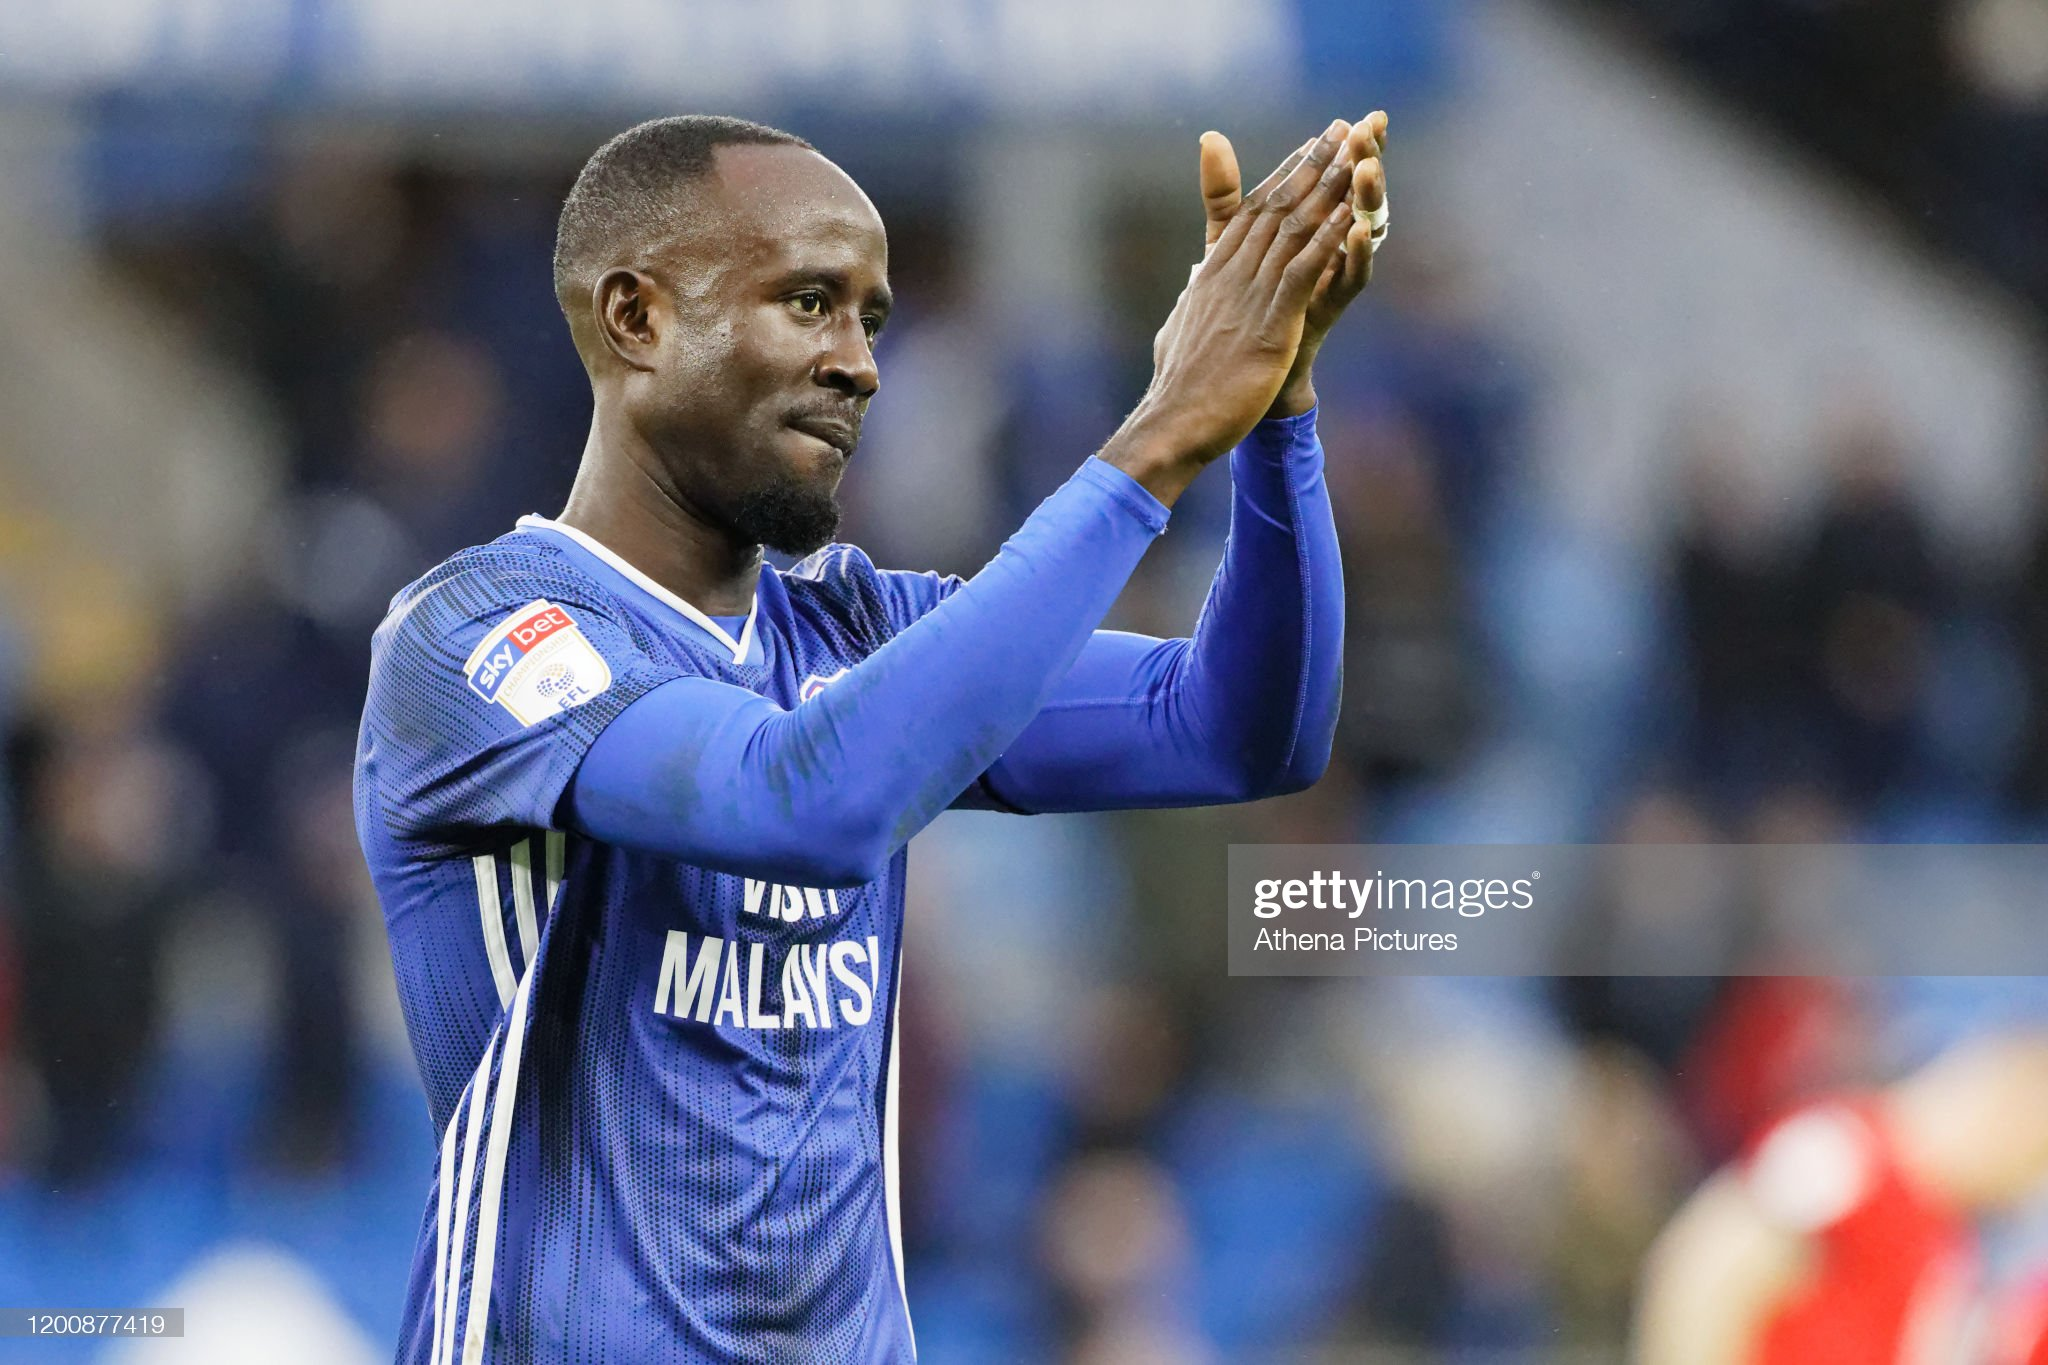 Cardiff City's Albert Adomah: I Should Have Stayed At Nottingham Forest